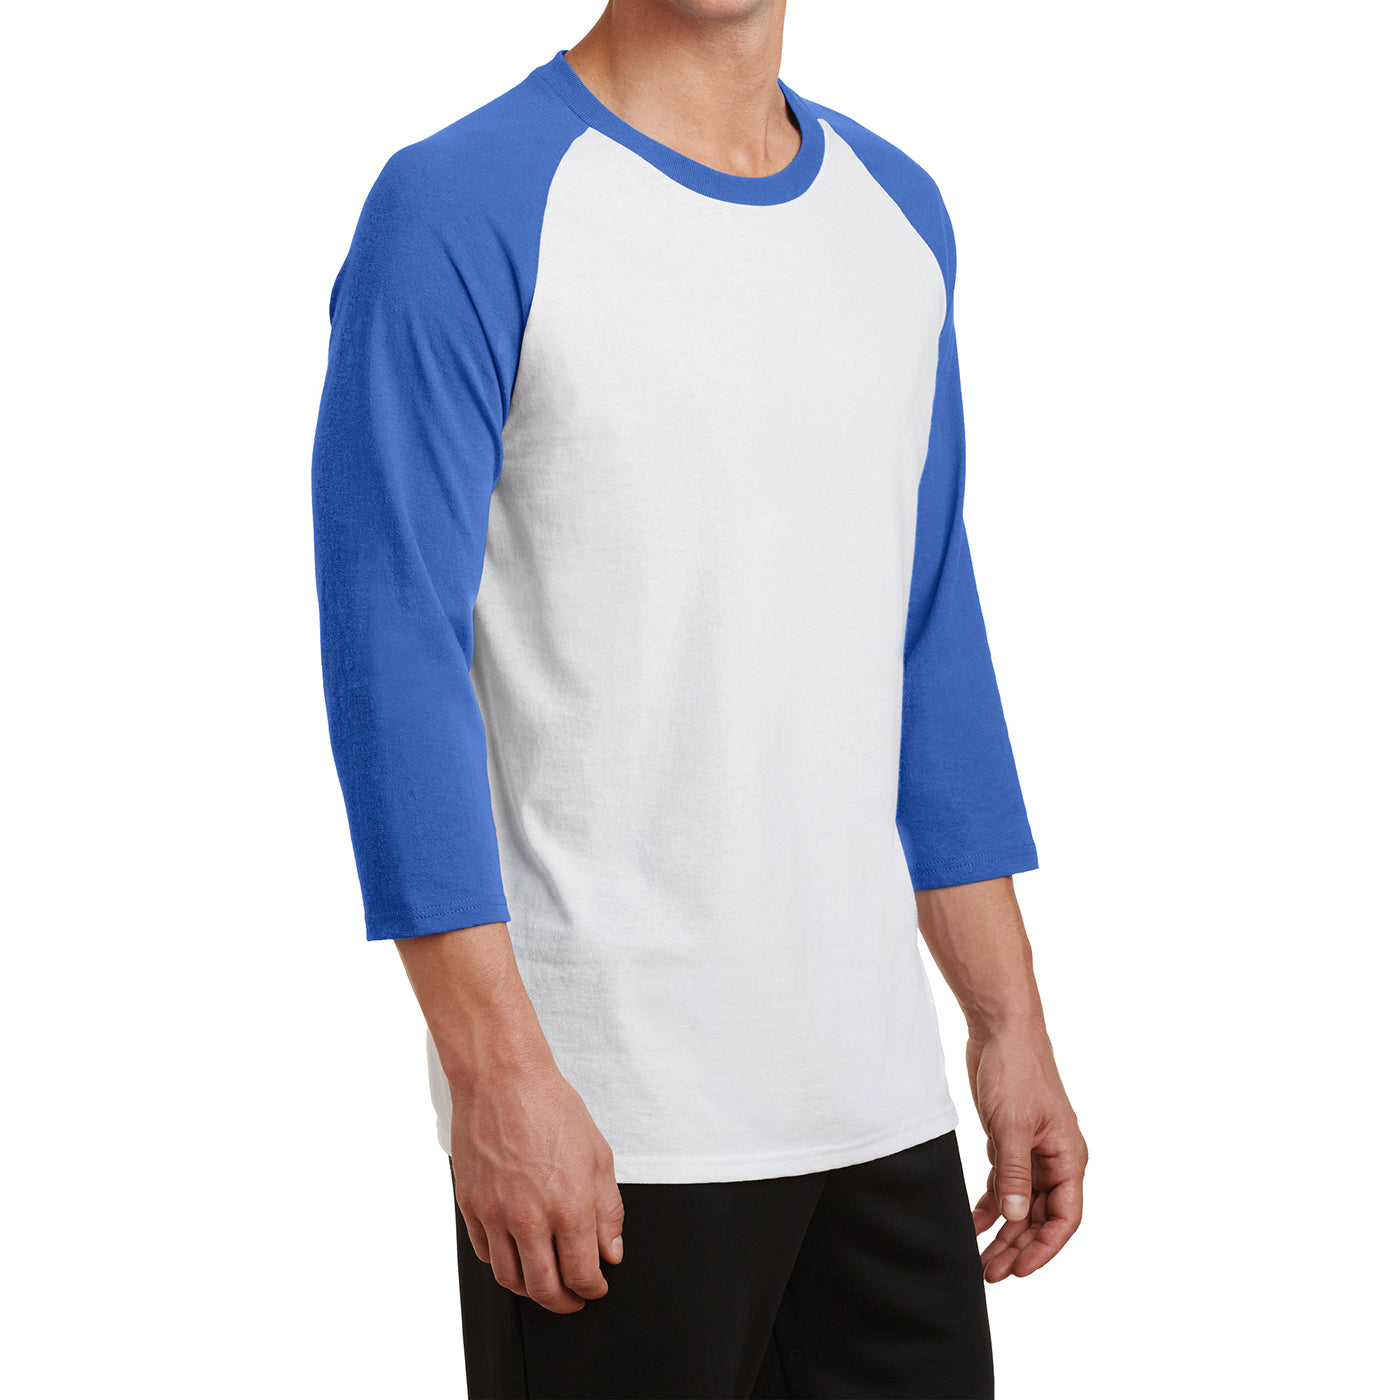 Men's Core Blend 3/4-Sleeve Raglan Tee - White/ Royal - Side